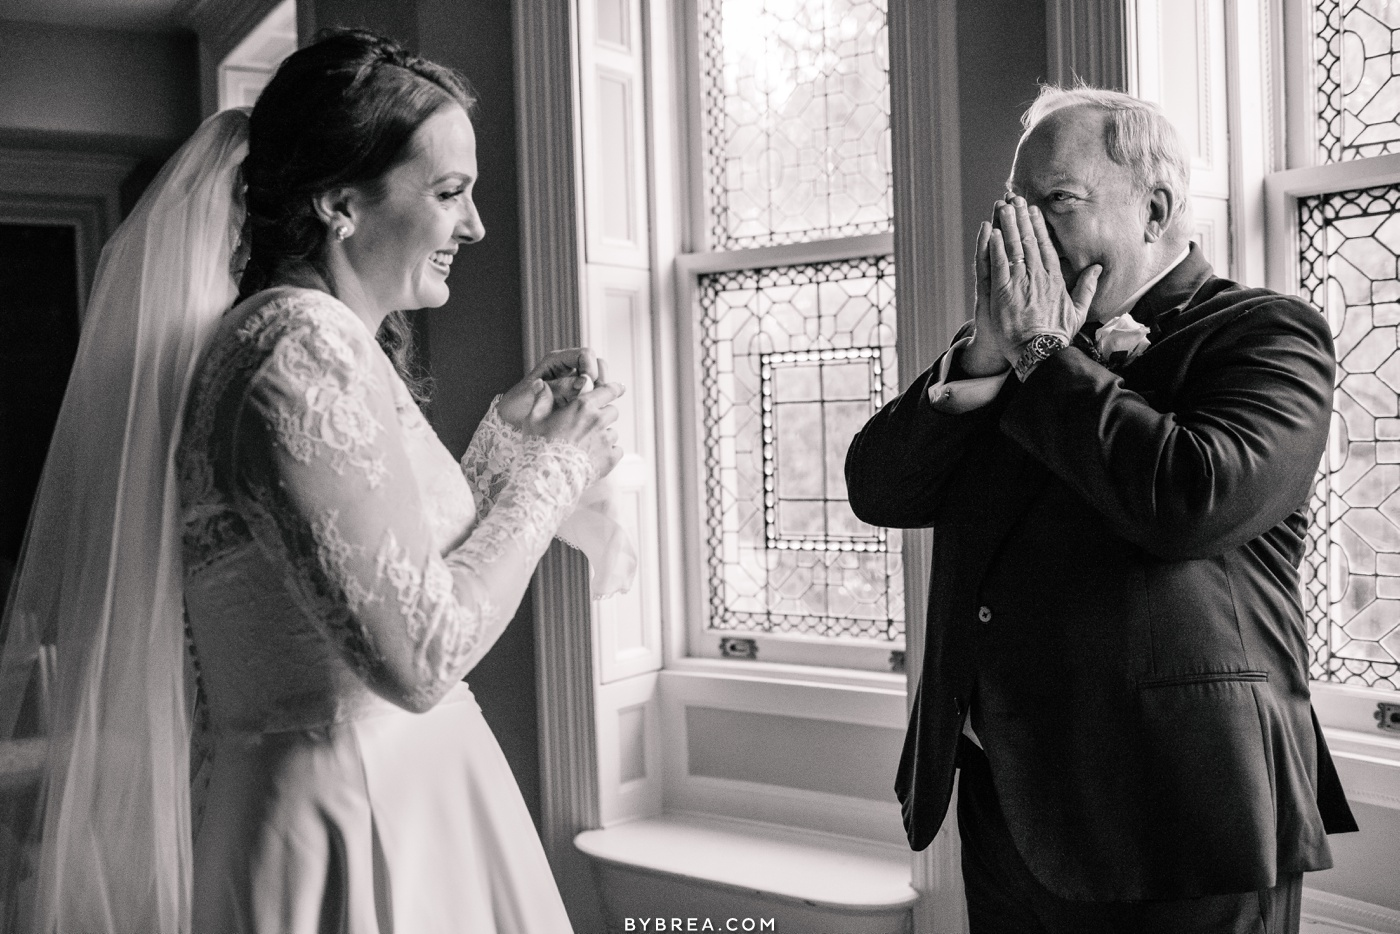 Candid photo of dad seeing her daughter in her dress during wedding at Engineer's Club Baltimore wedding photography